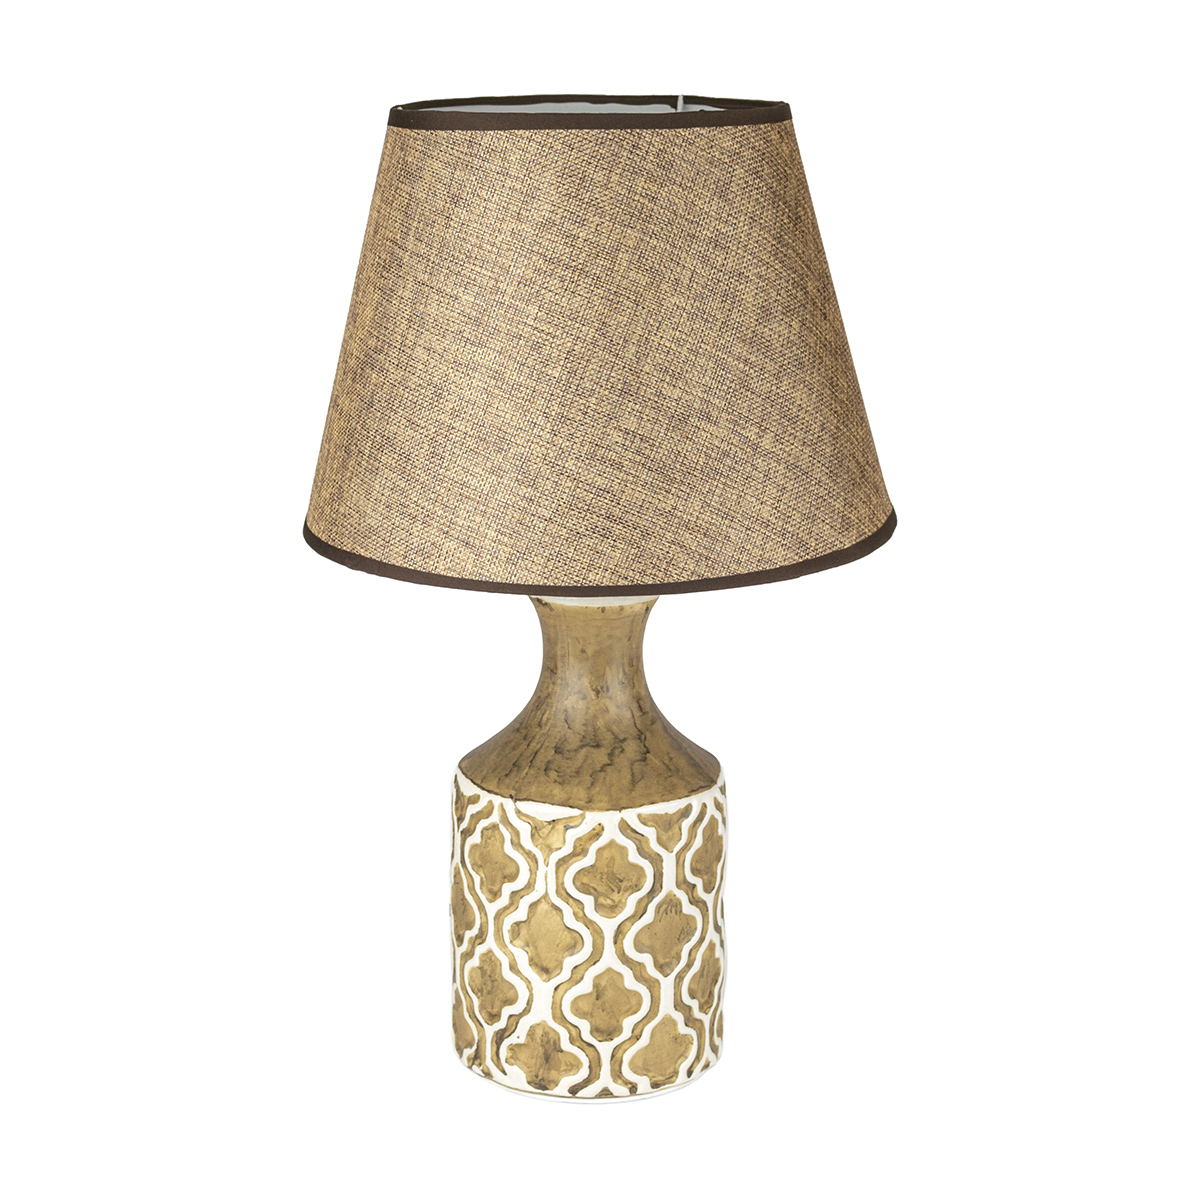 15.75 Inch Beige with White Pattern Lamp - 18HY012D9